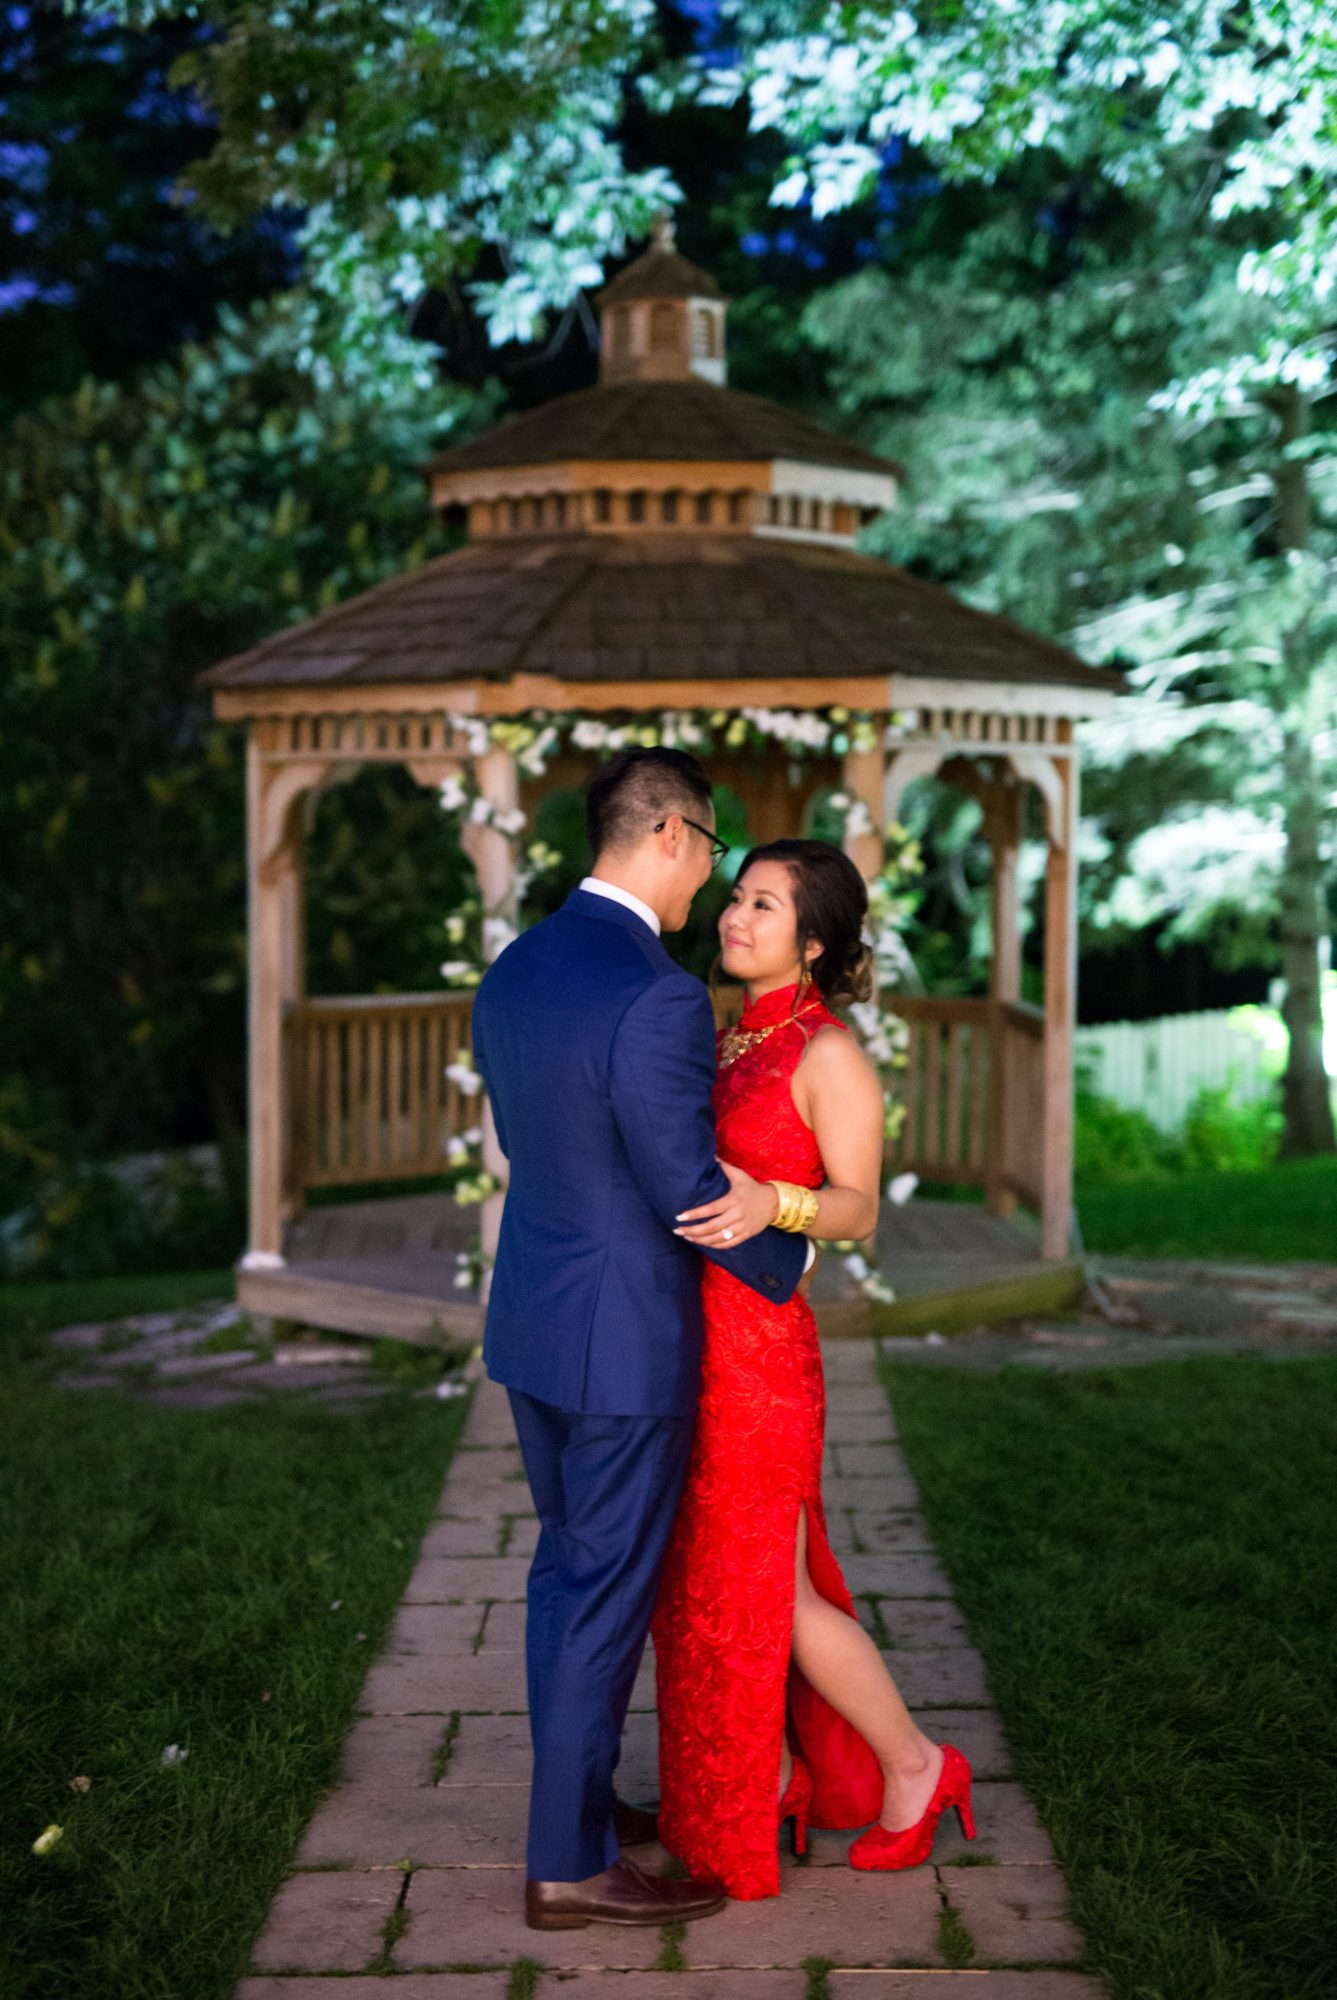 Gazebo Night Shot Toronto Chinese Korean Wedding Zsuzsi Pal Photography